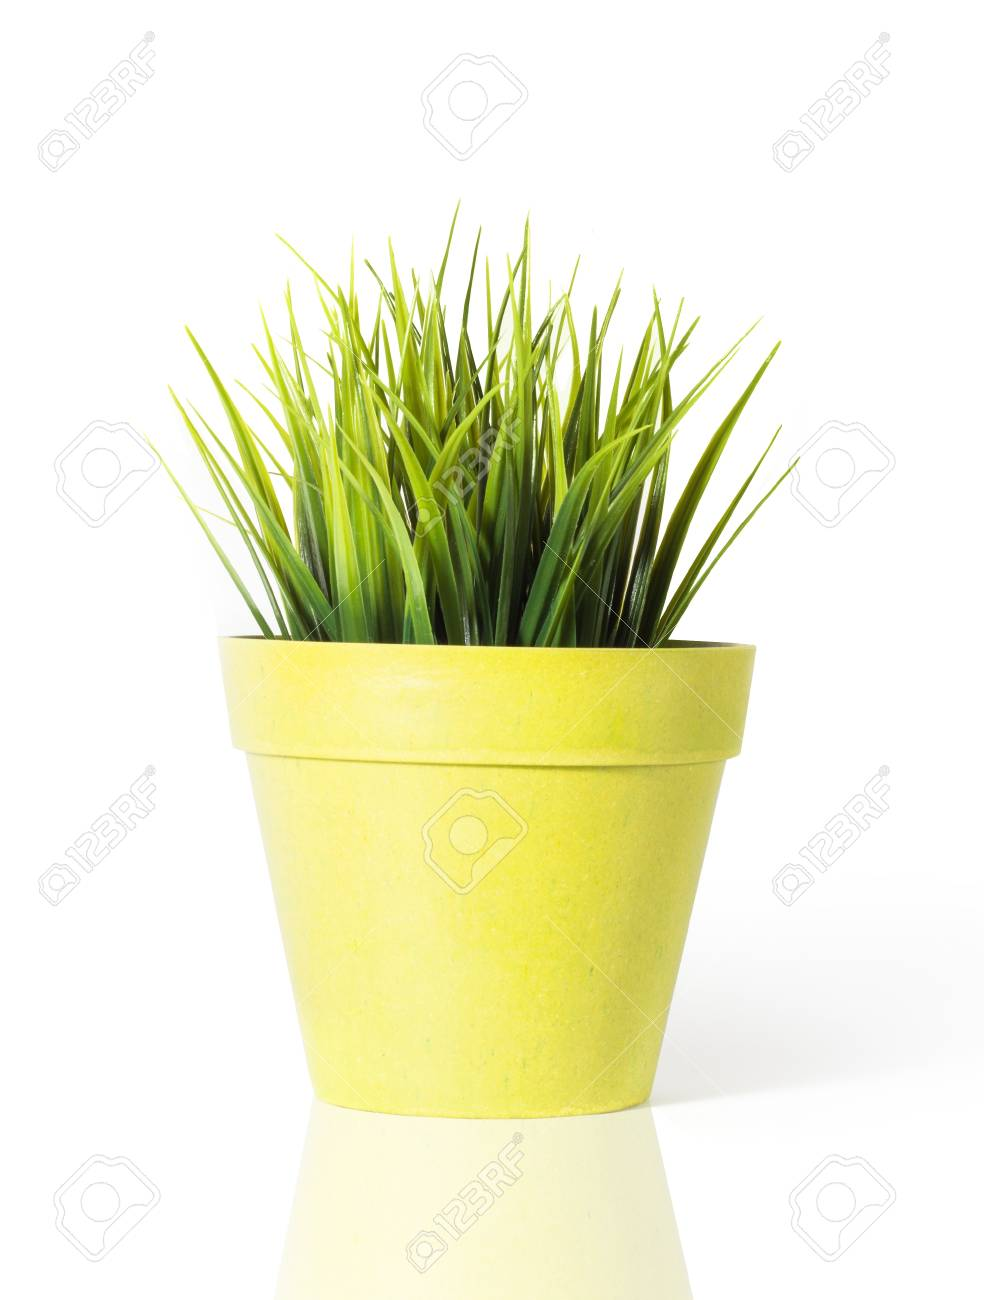 Green Grass In A Yellow Flower Pot Isolated On White Background